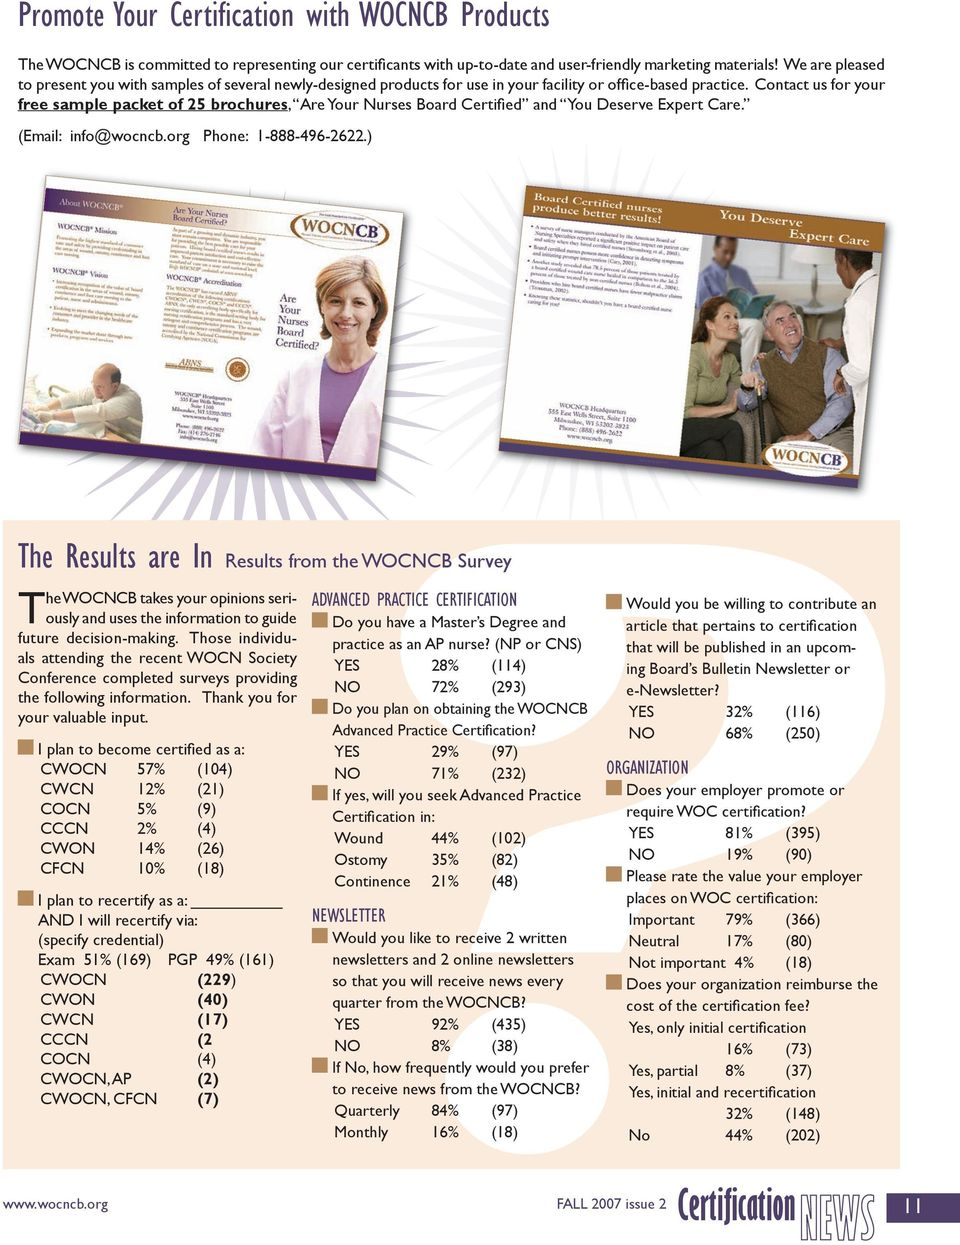 Contact us for your free sample packet of 25 brochures, Are Your Nurses Board Certified and You Deserve Expert Care. (Email: info@wocncb.org Phone: 1-888-496-2622.